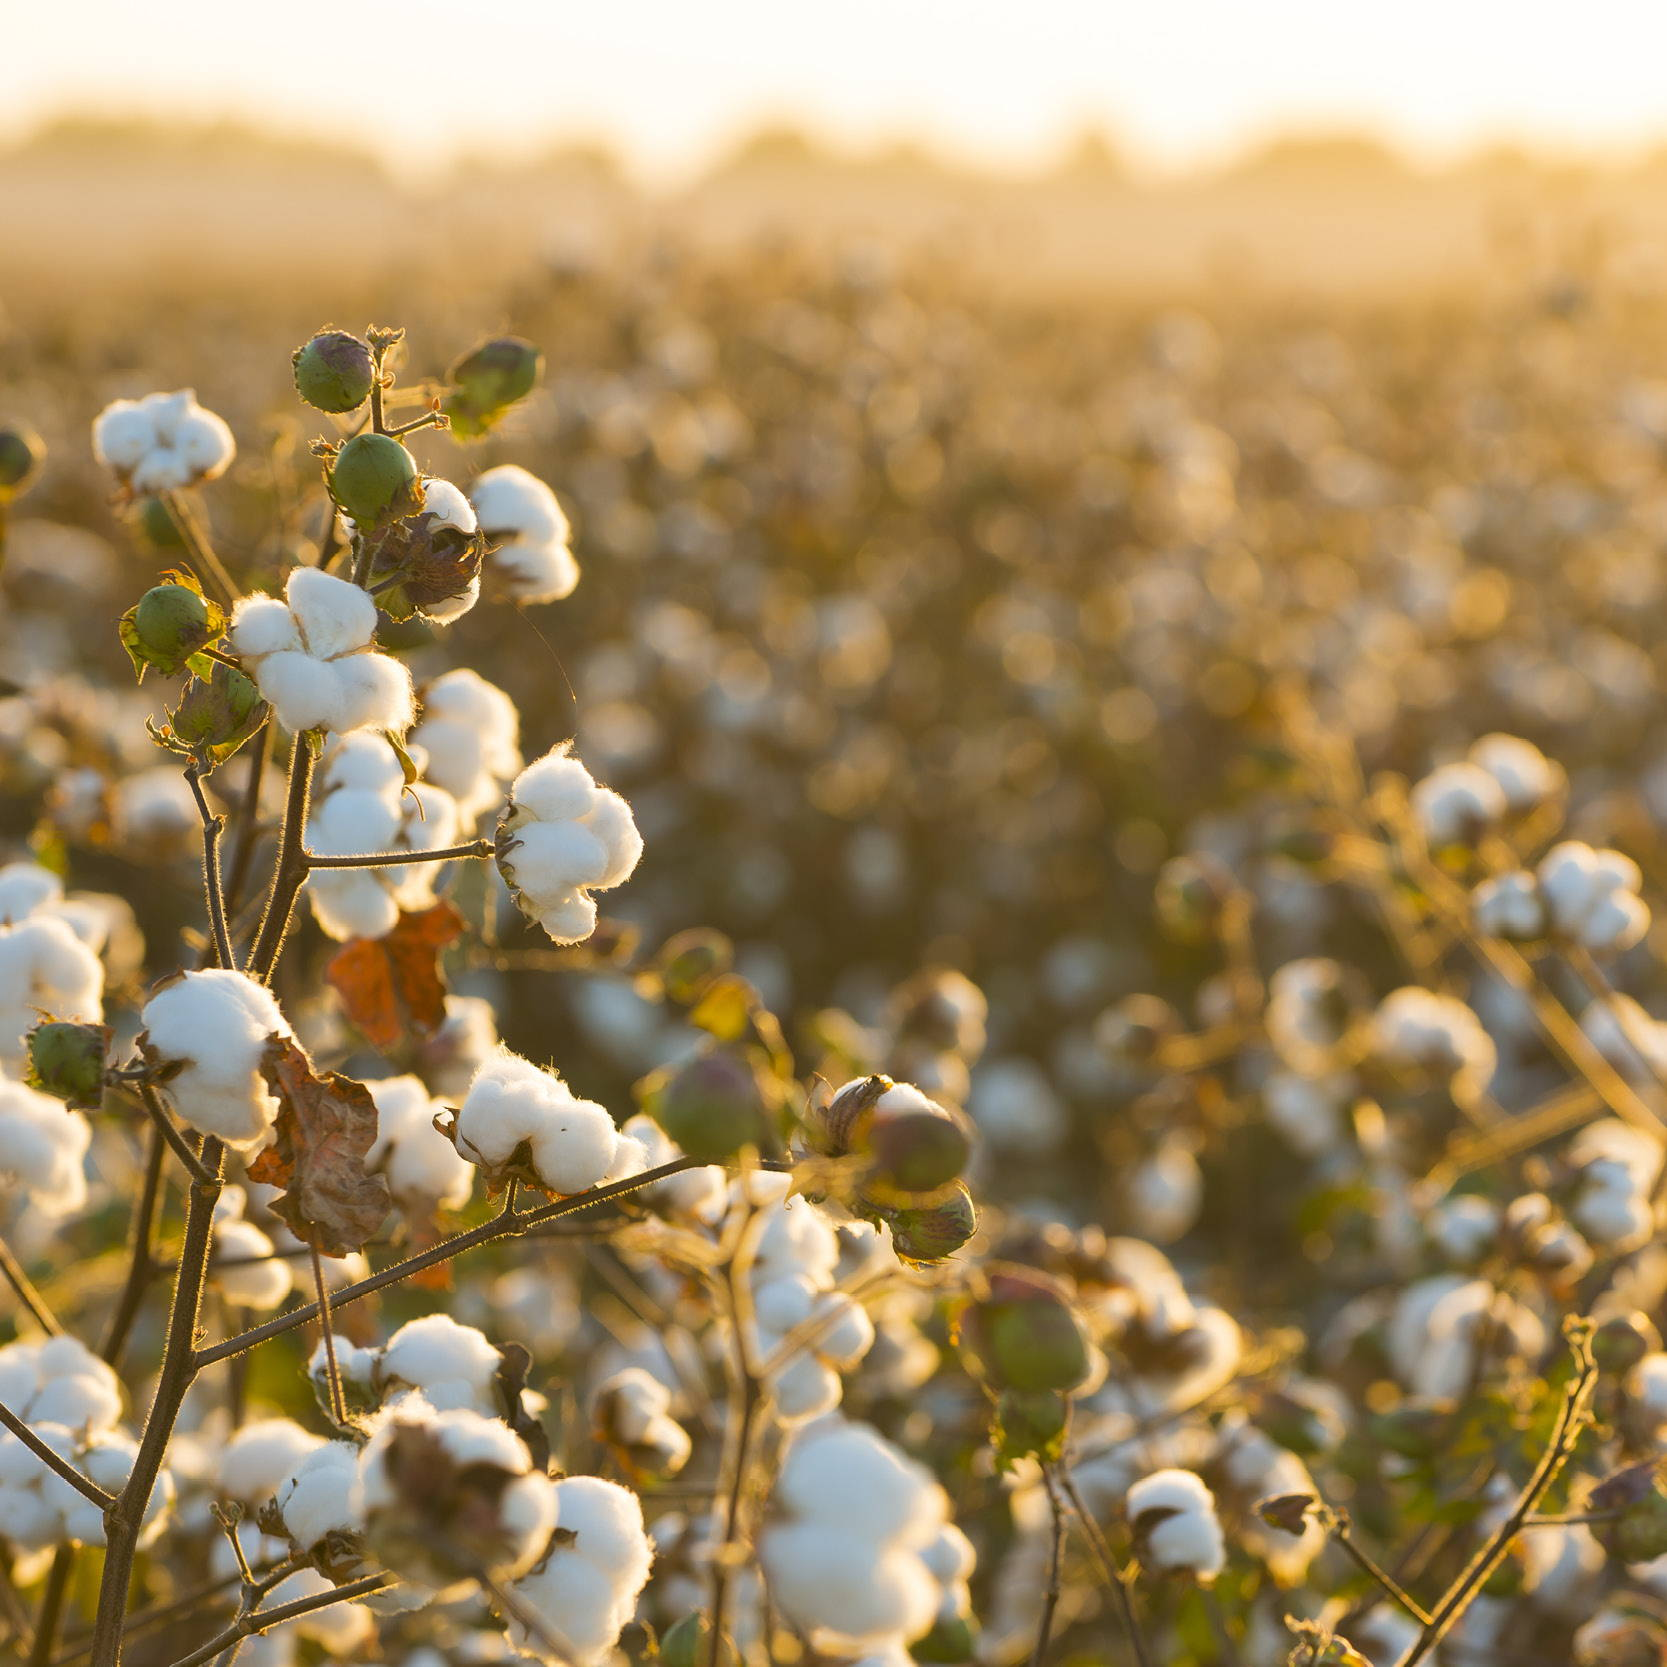 Organic cotton growing in a field at sunrise. Image